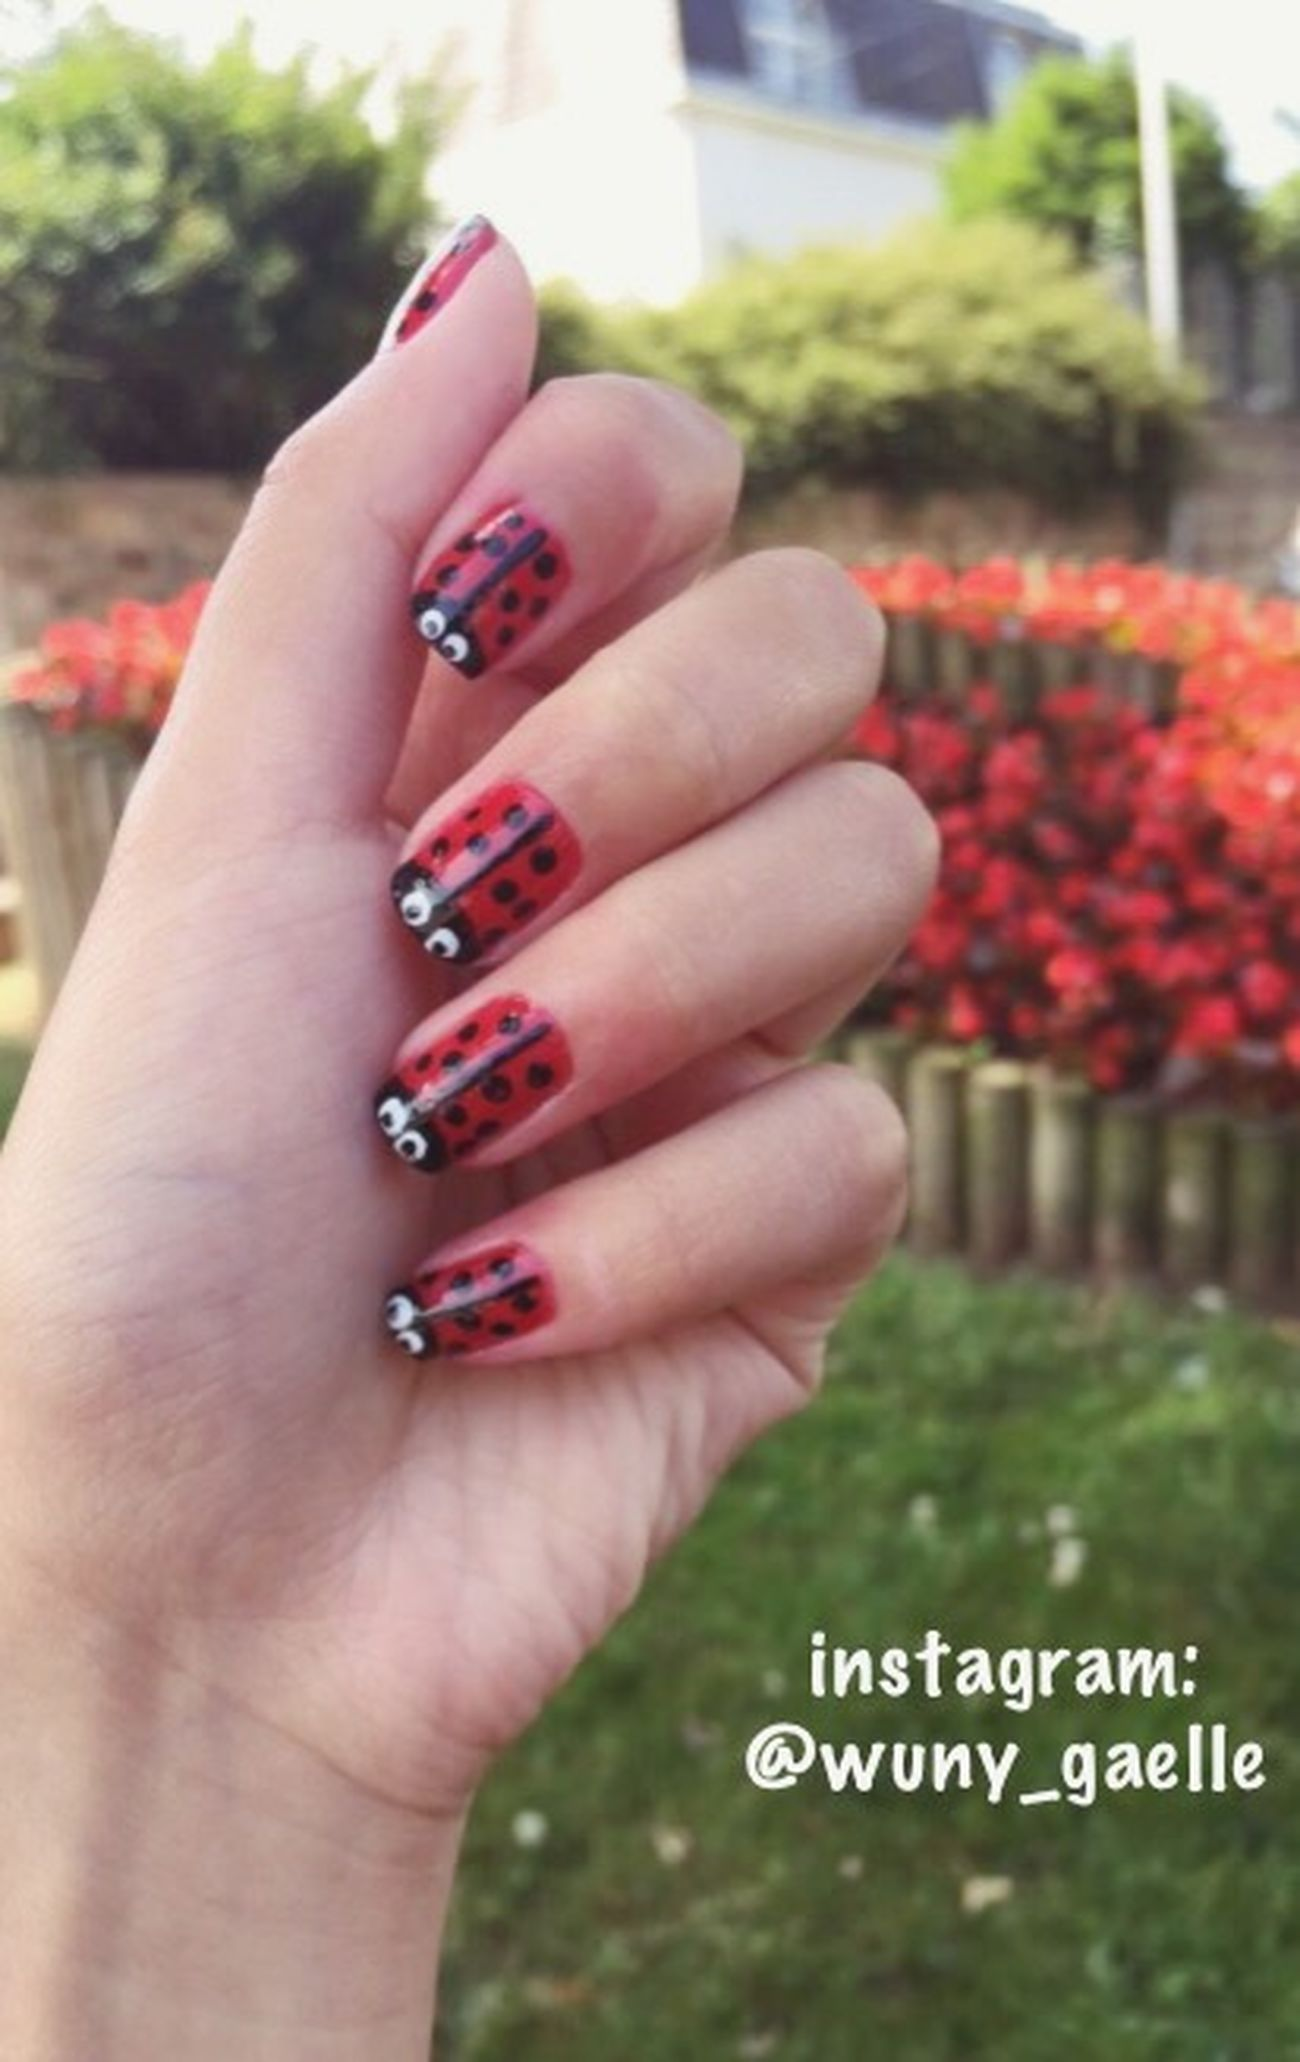 Ladybug Nail Art 🐞 More on instagram: @wuny_gaelle Ladybug Nature Nails Nailart  Nail Art Coccinelle Nailpolish Lovely Cute